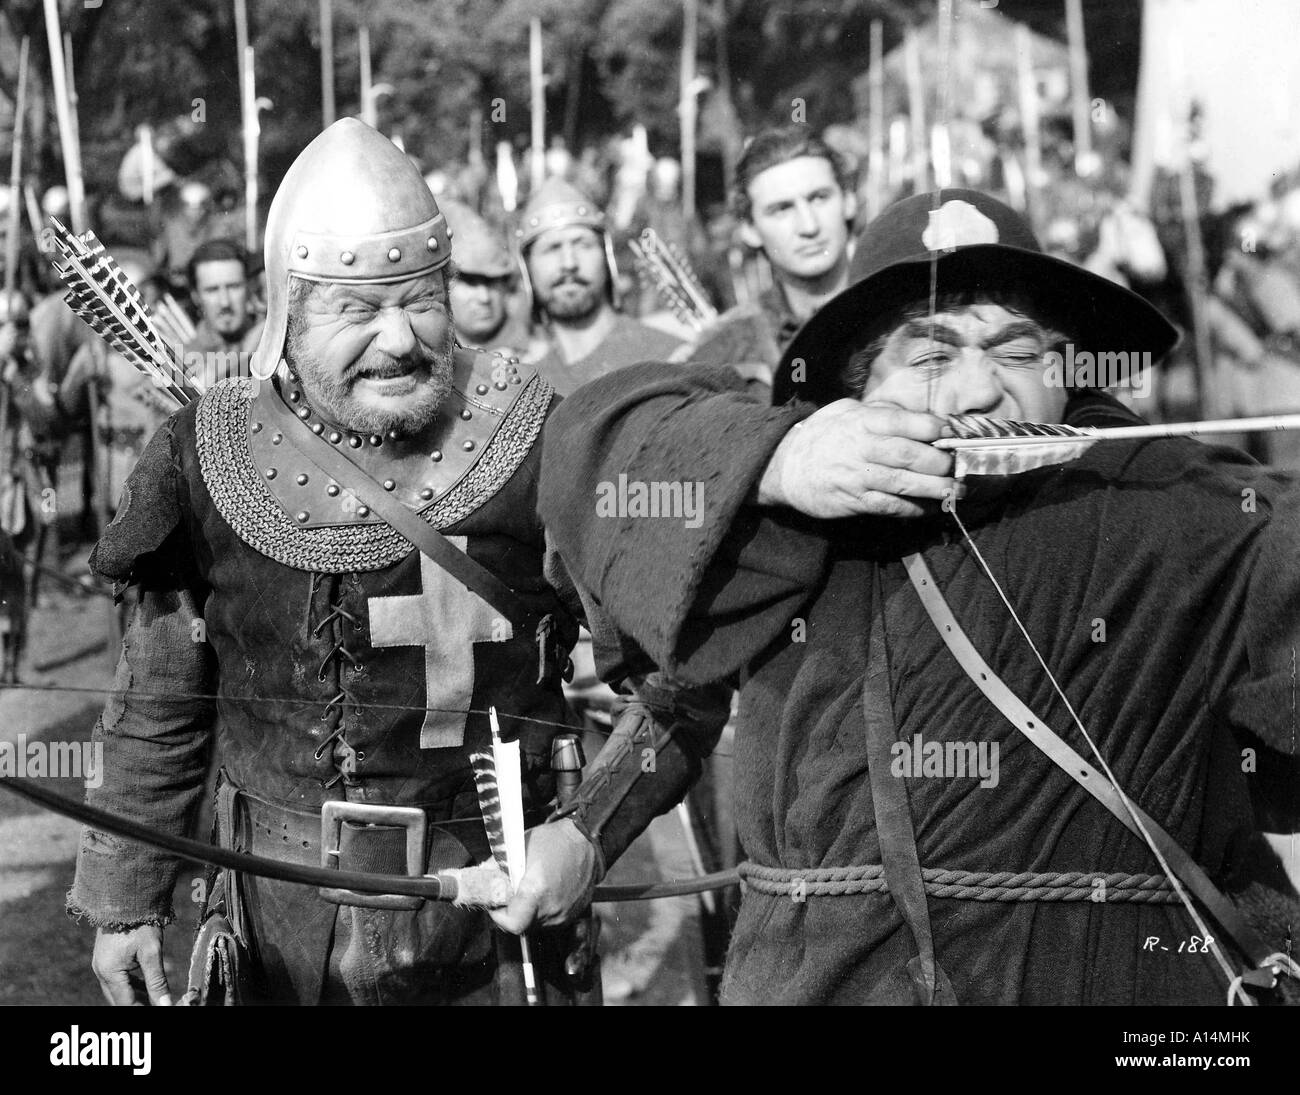 The Adventures of Robin Hood Year 1938 Directors Michael Curtiz and William Keighley Errol Flynn - Stock Image